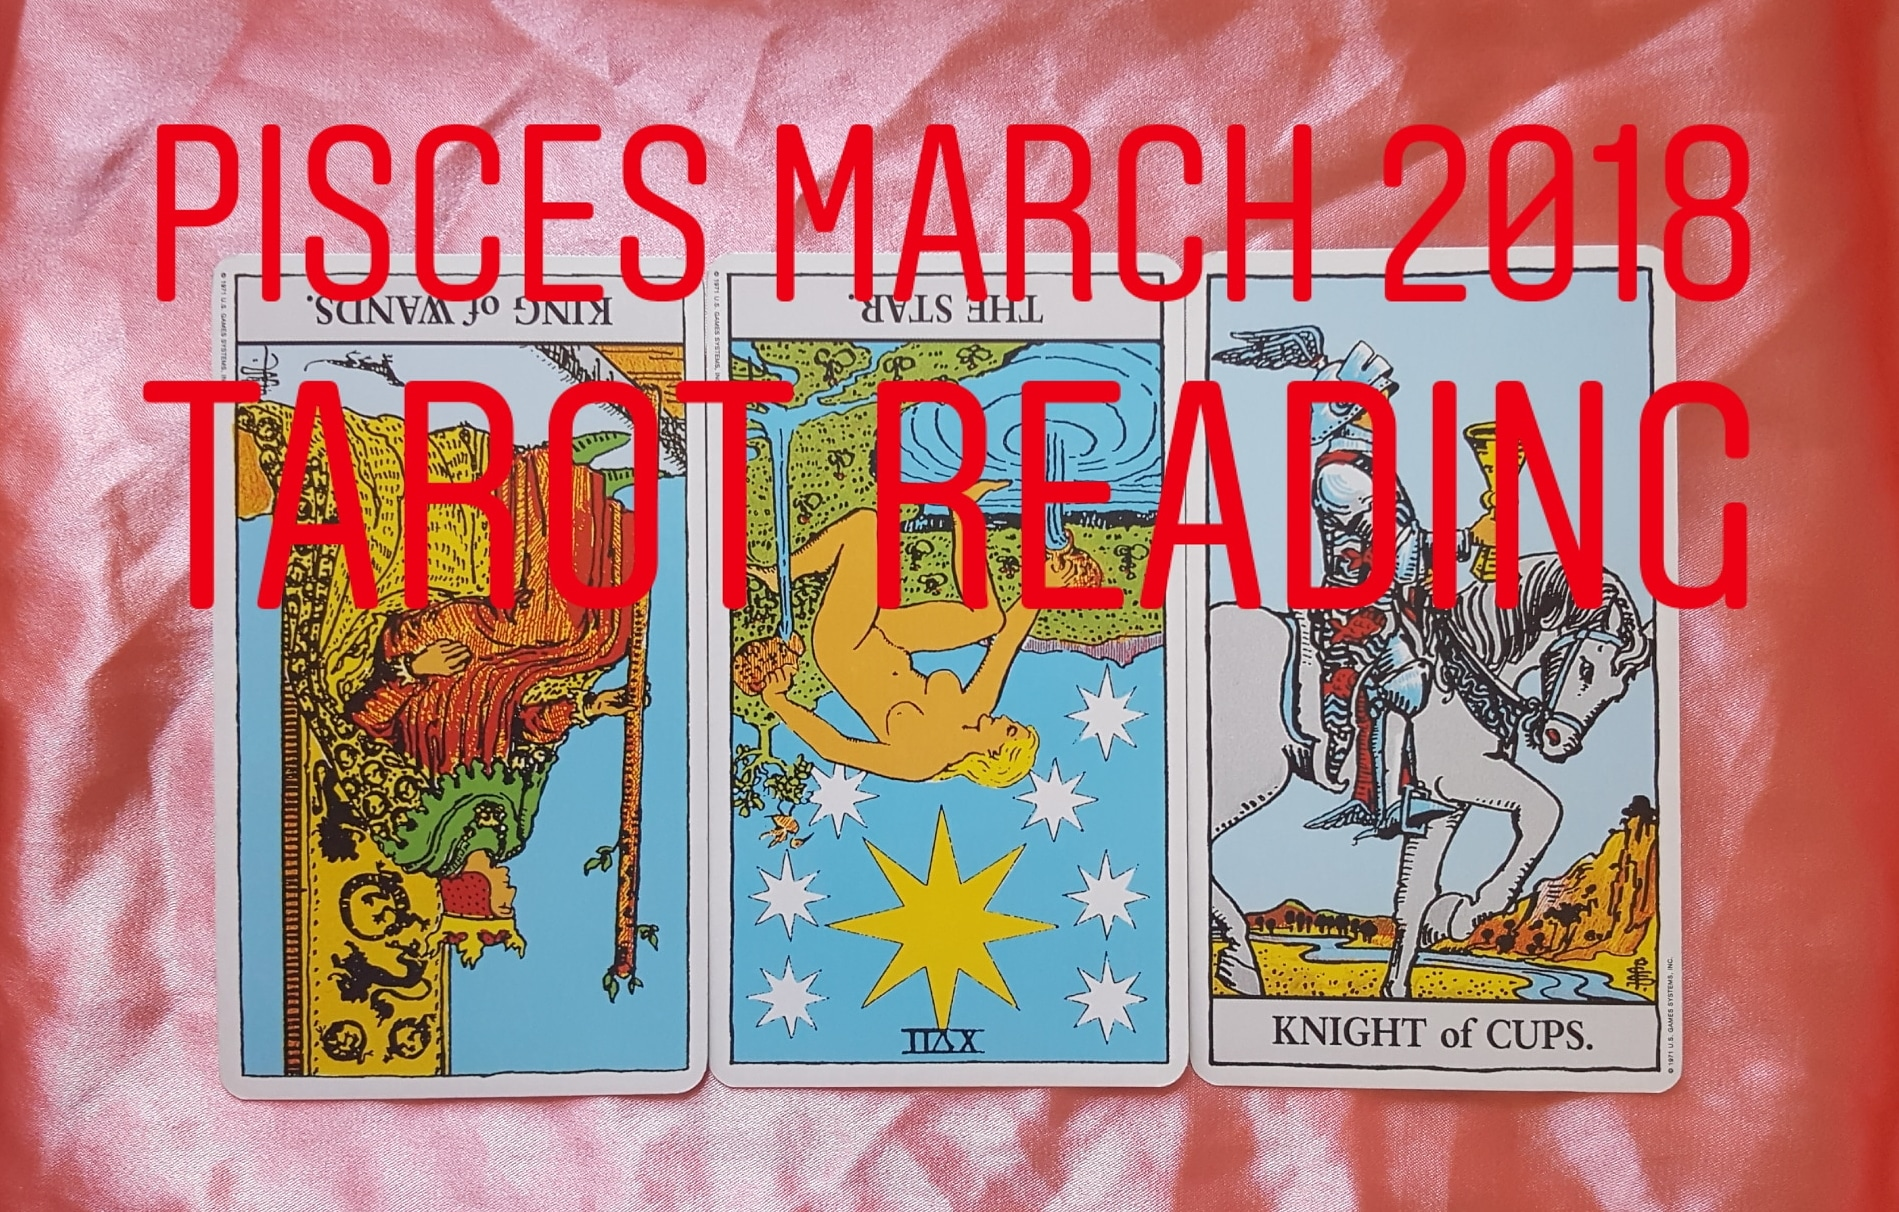 Pisces March 2018  King of Wands reversed/ The Star reversed/ Knight of Cups